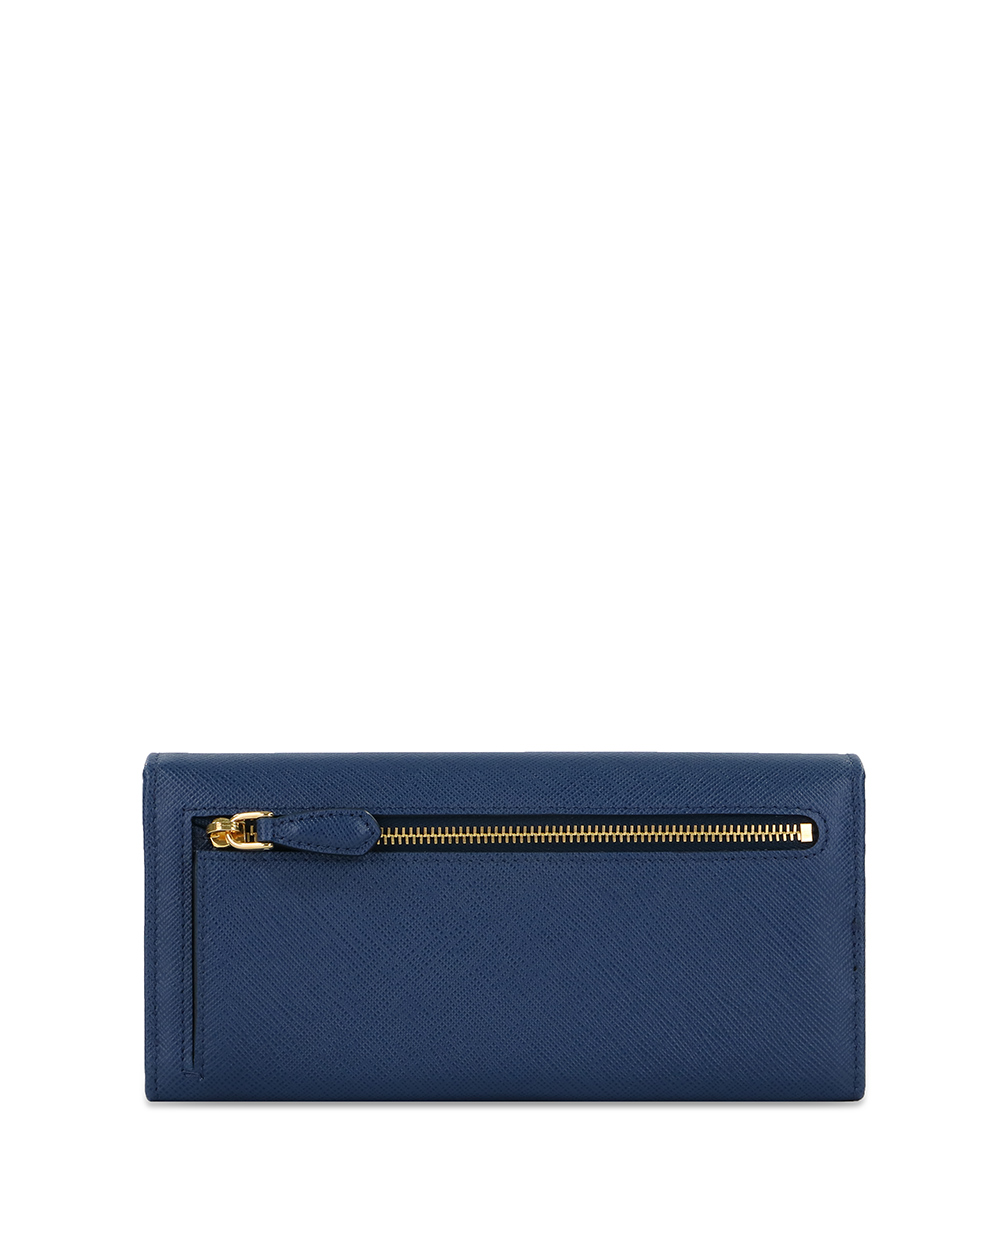 Saffiano Leather Wallet 3